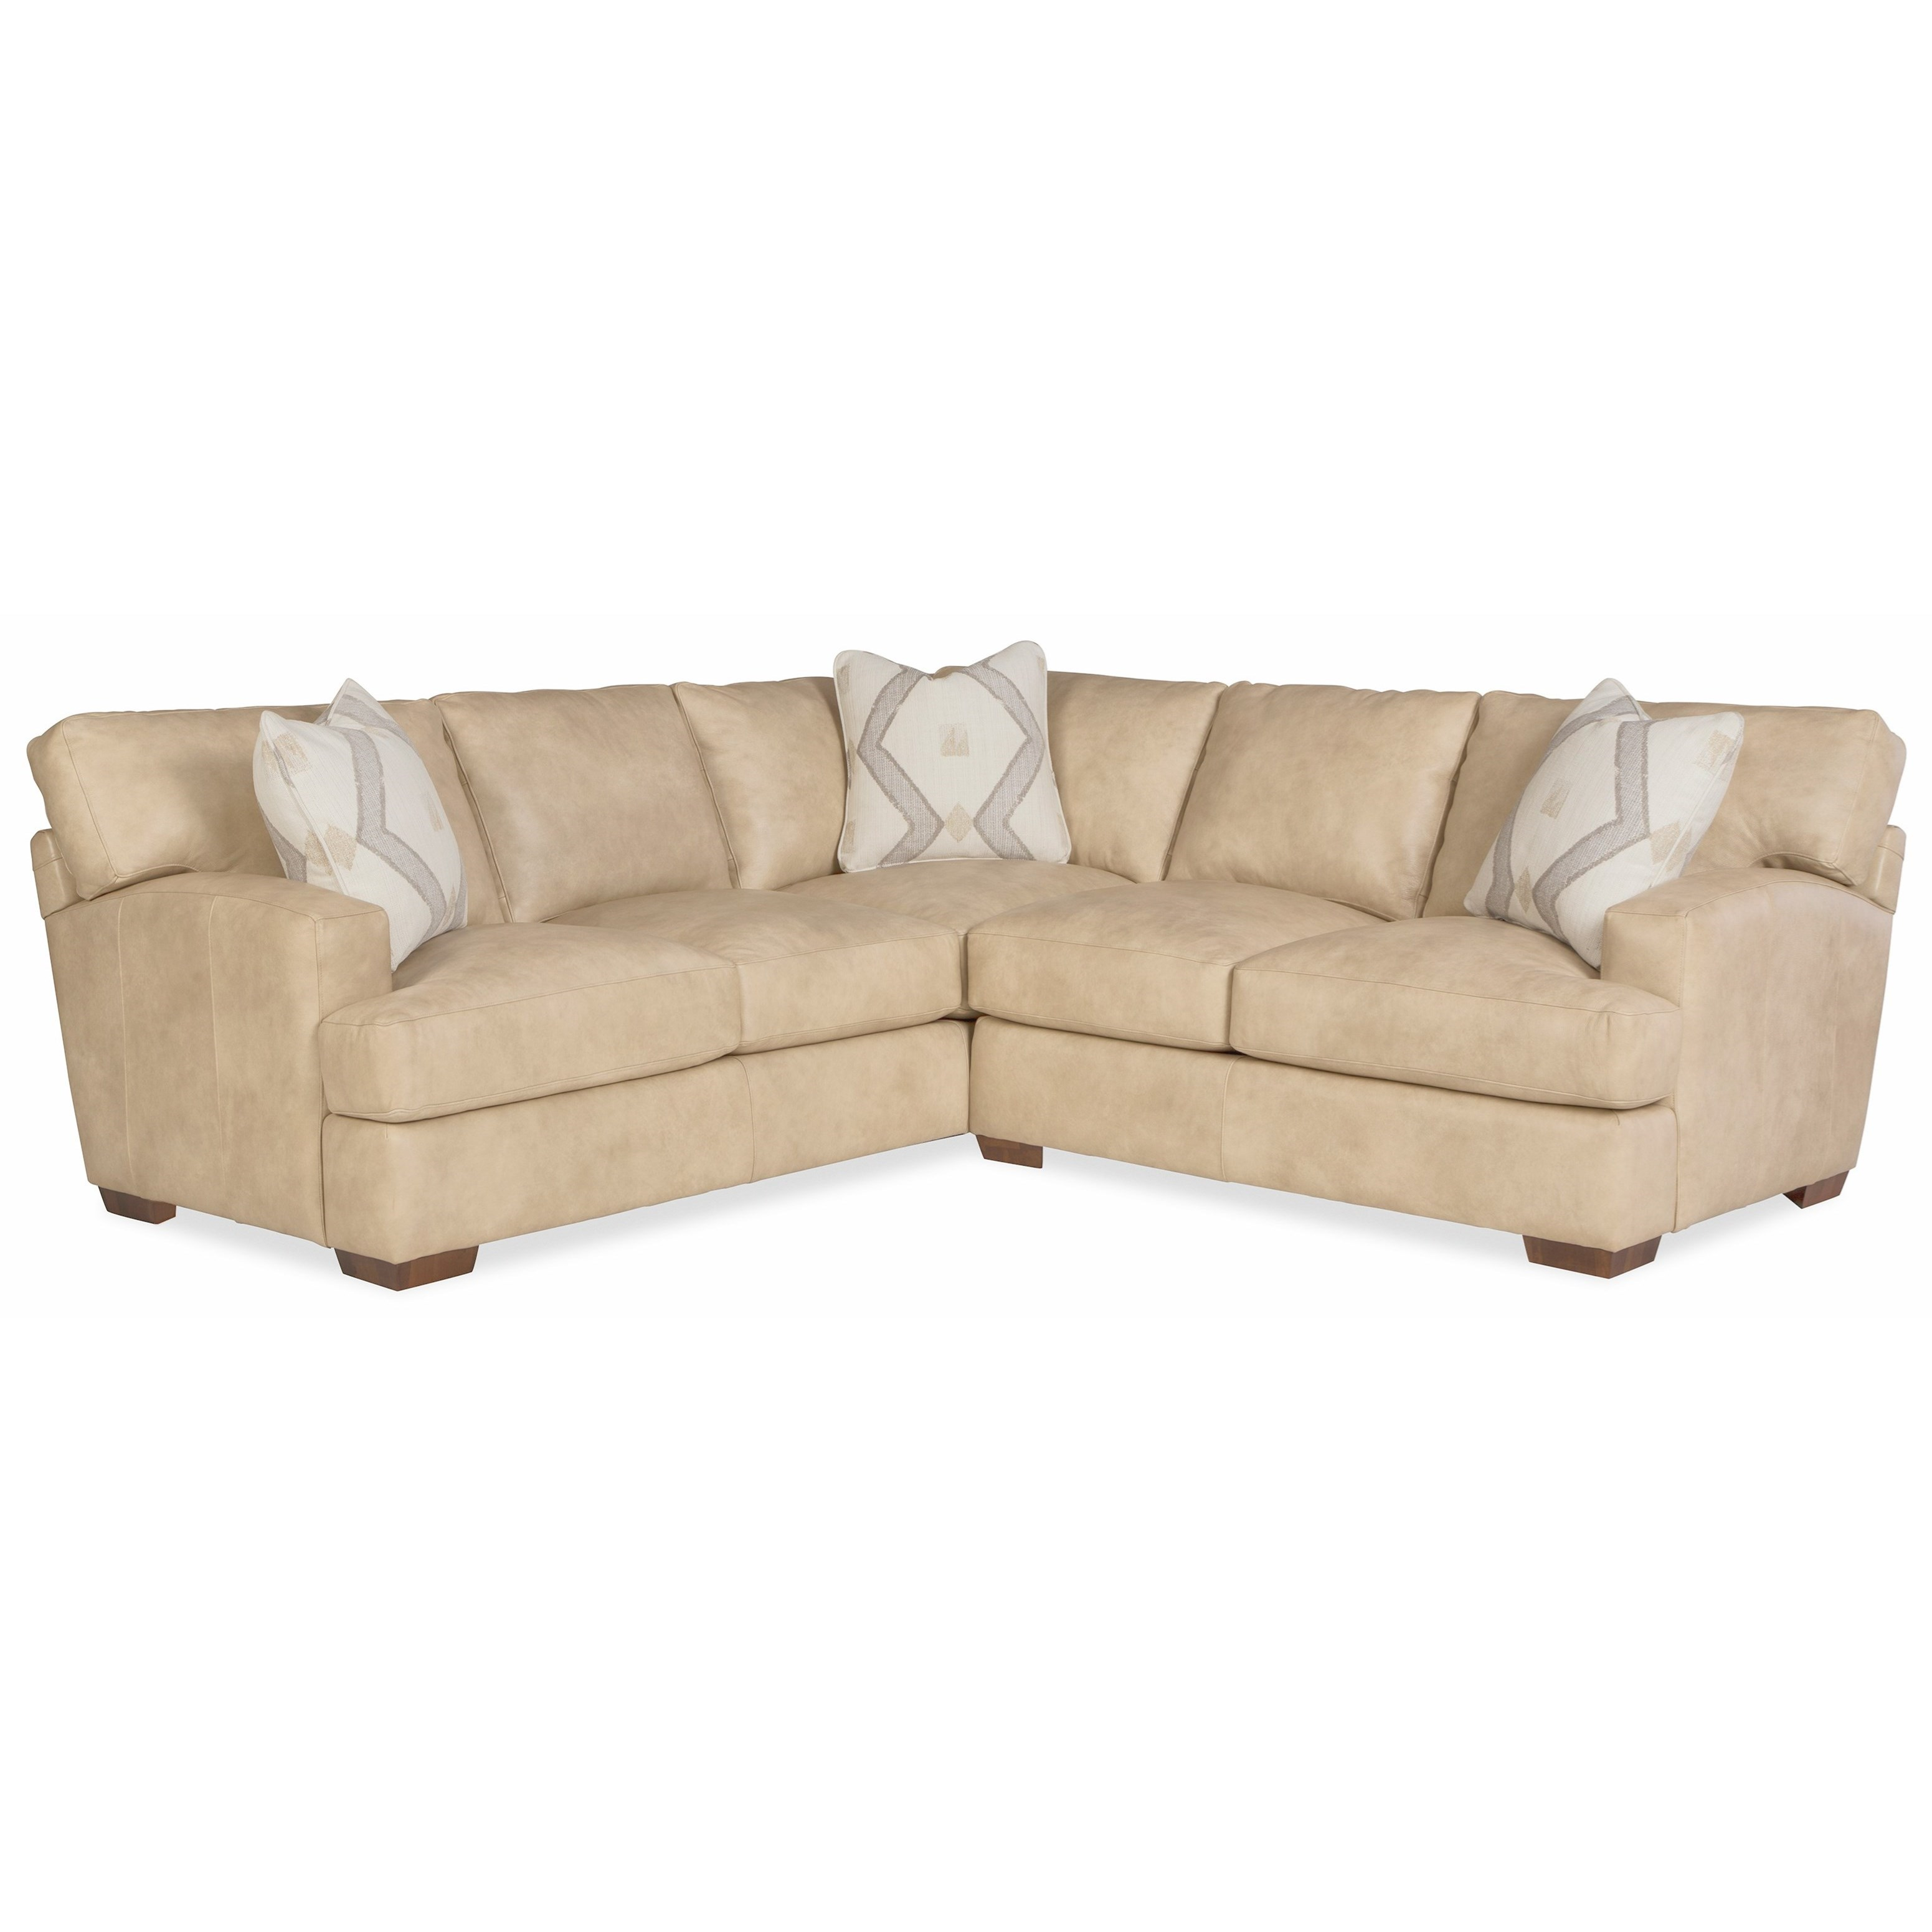 L785350BD 2-Piece Leather Sectional w/ Pillows by Craftmaster at Bullard Furniture